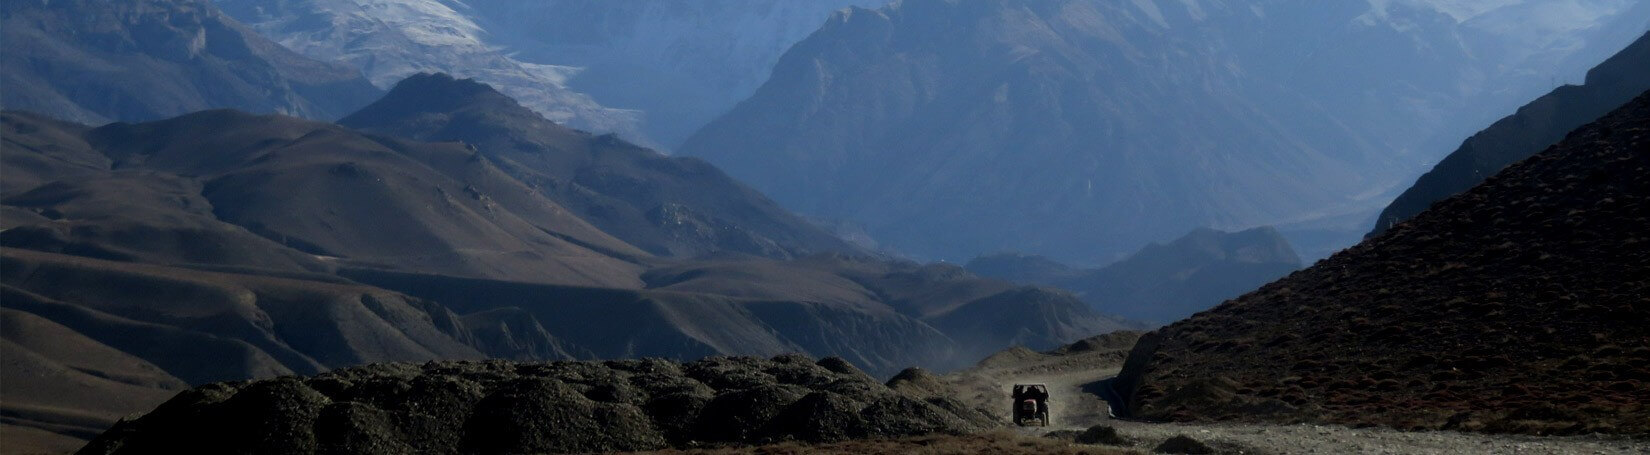 Rough road of Upper Mustang region